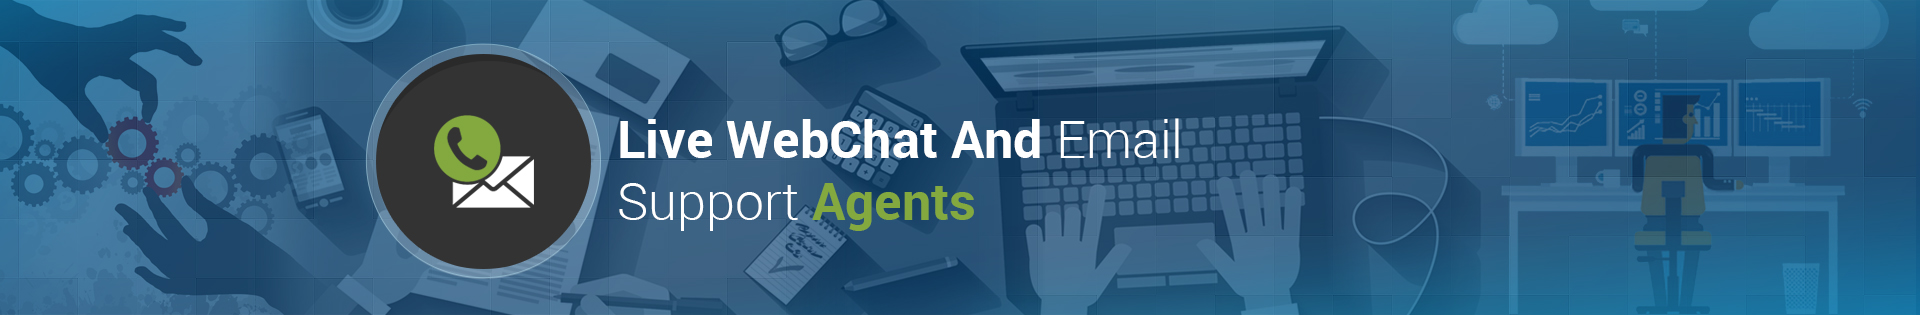 Live WebChat AND Email Support Agents